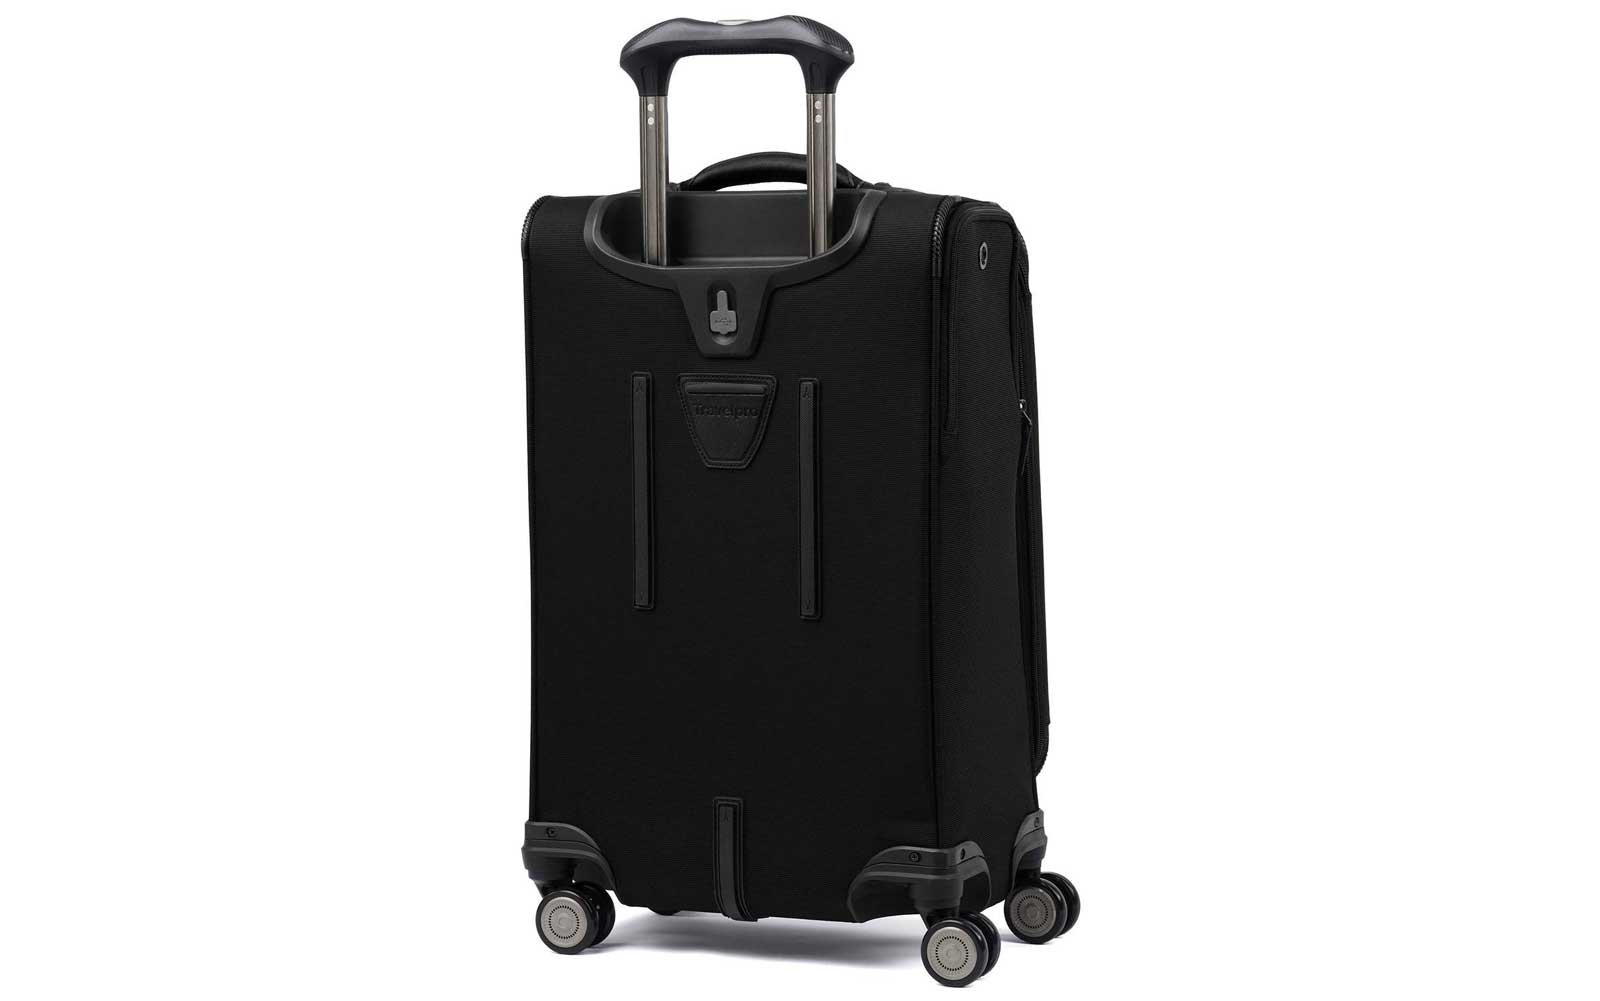 Black Travelpro Softside Suitcase